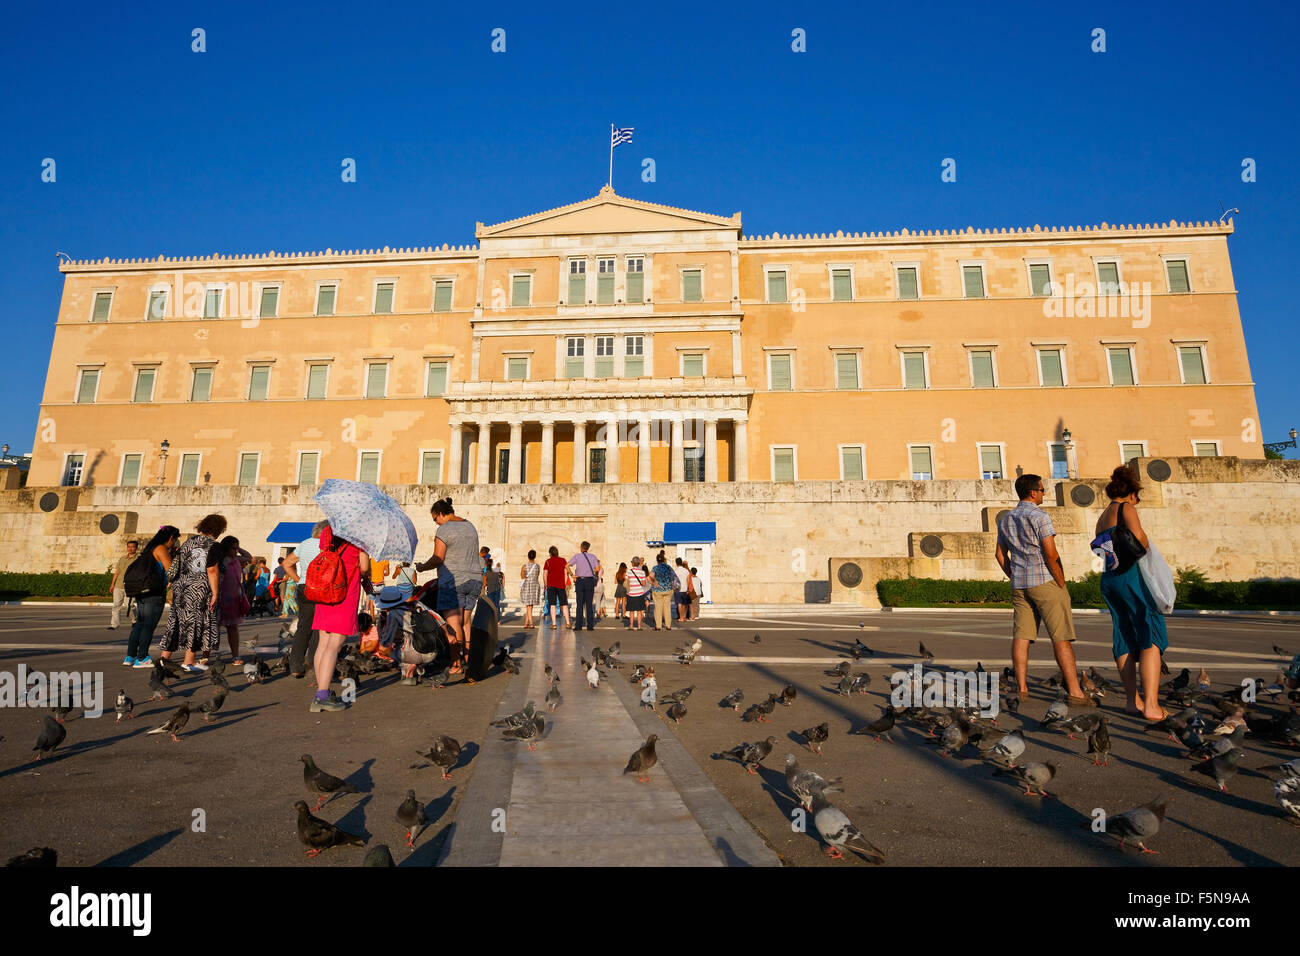 Tourists in front of the building of Greek parliament - Stock Image